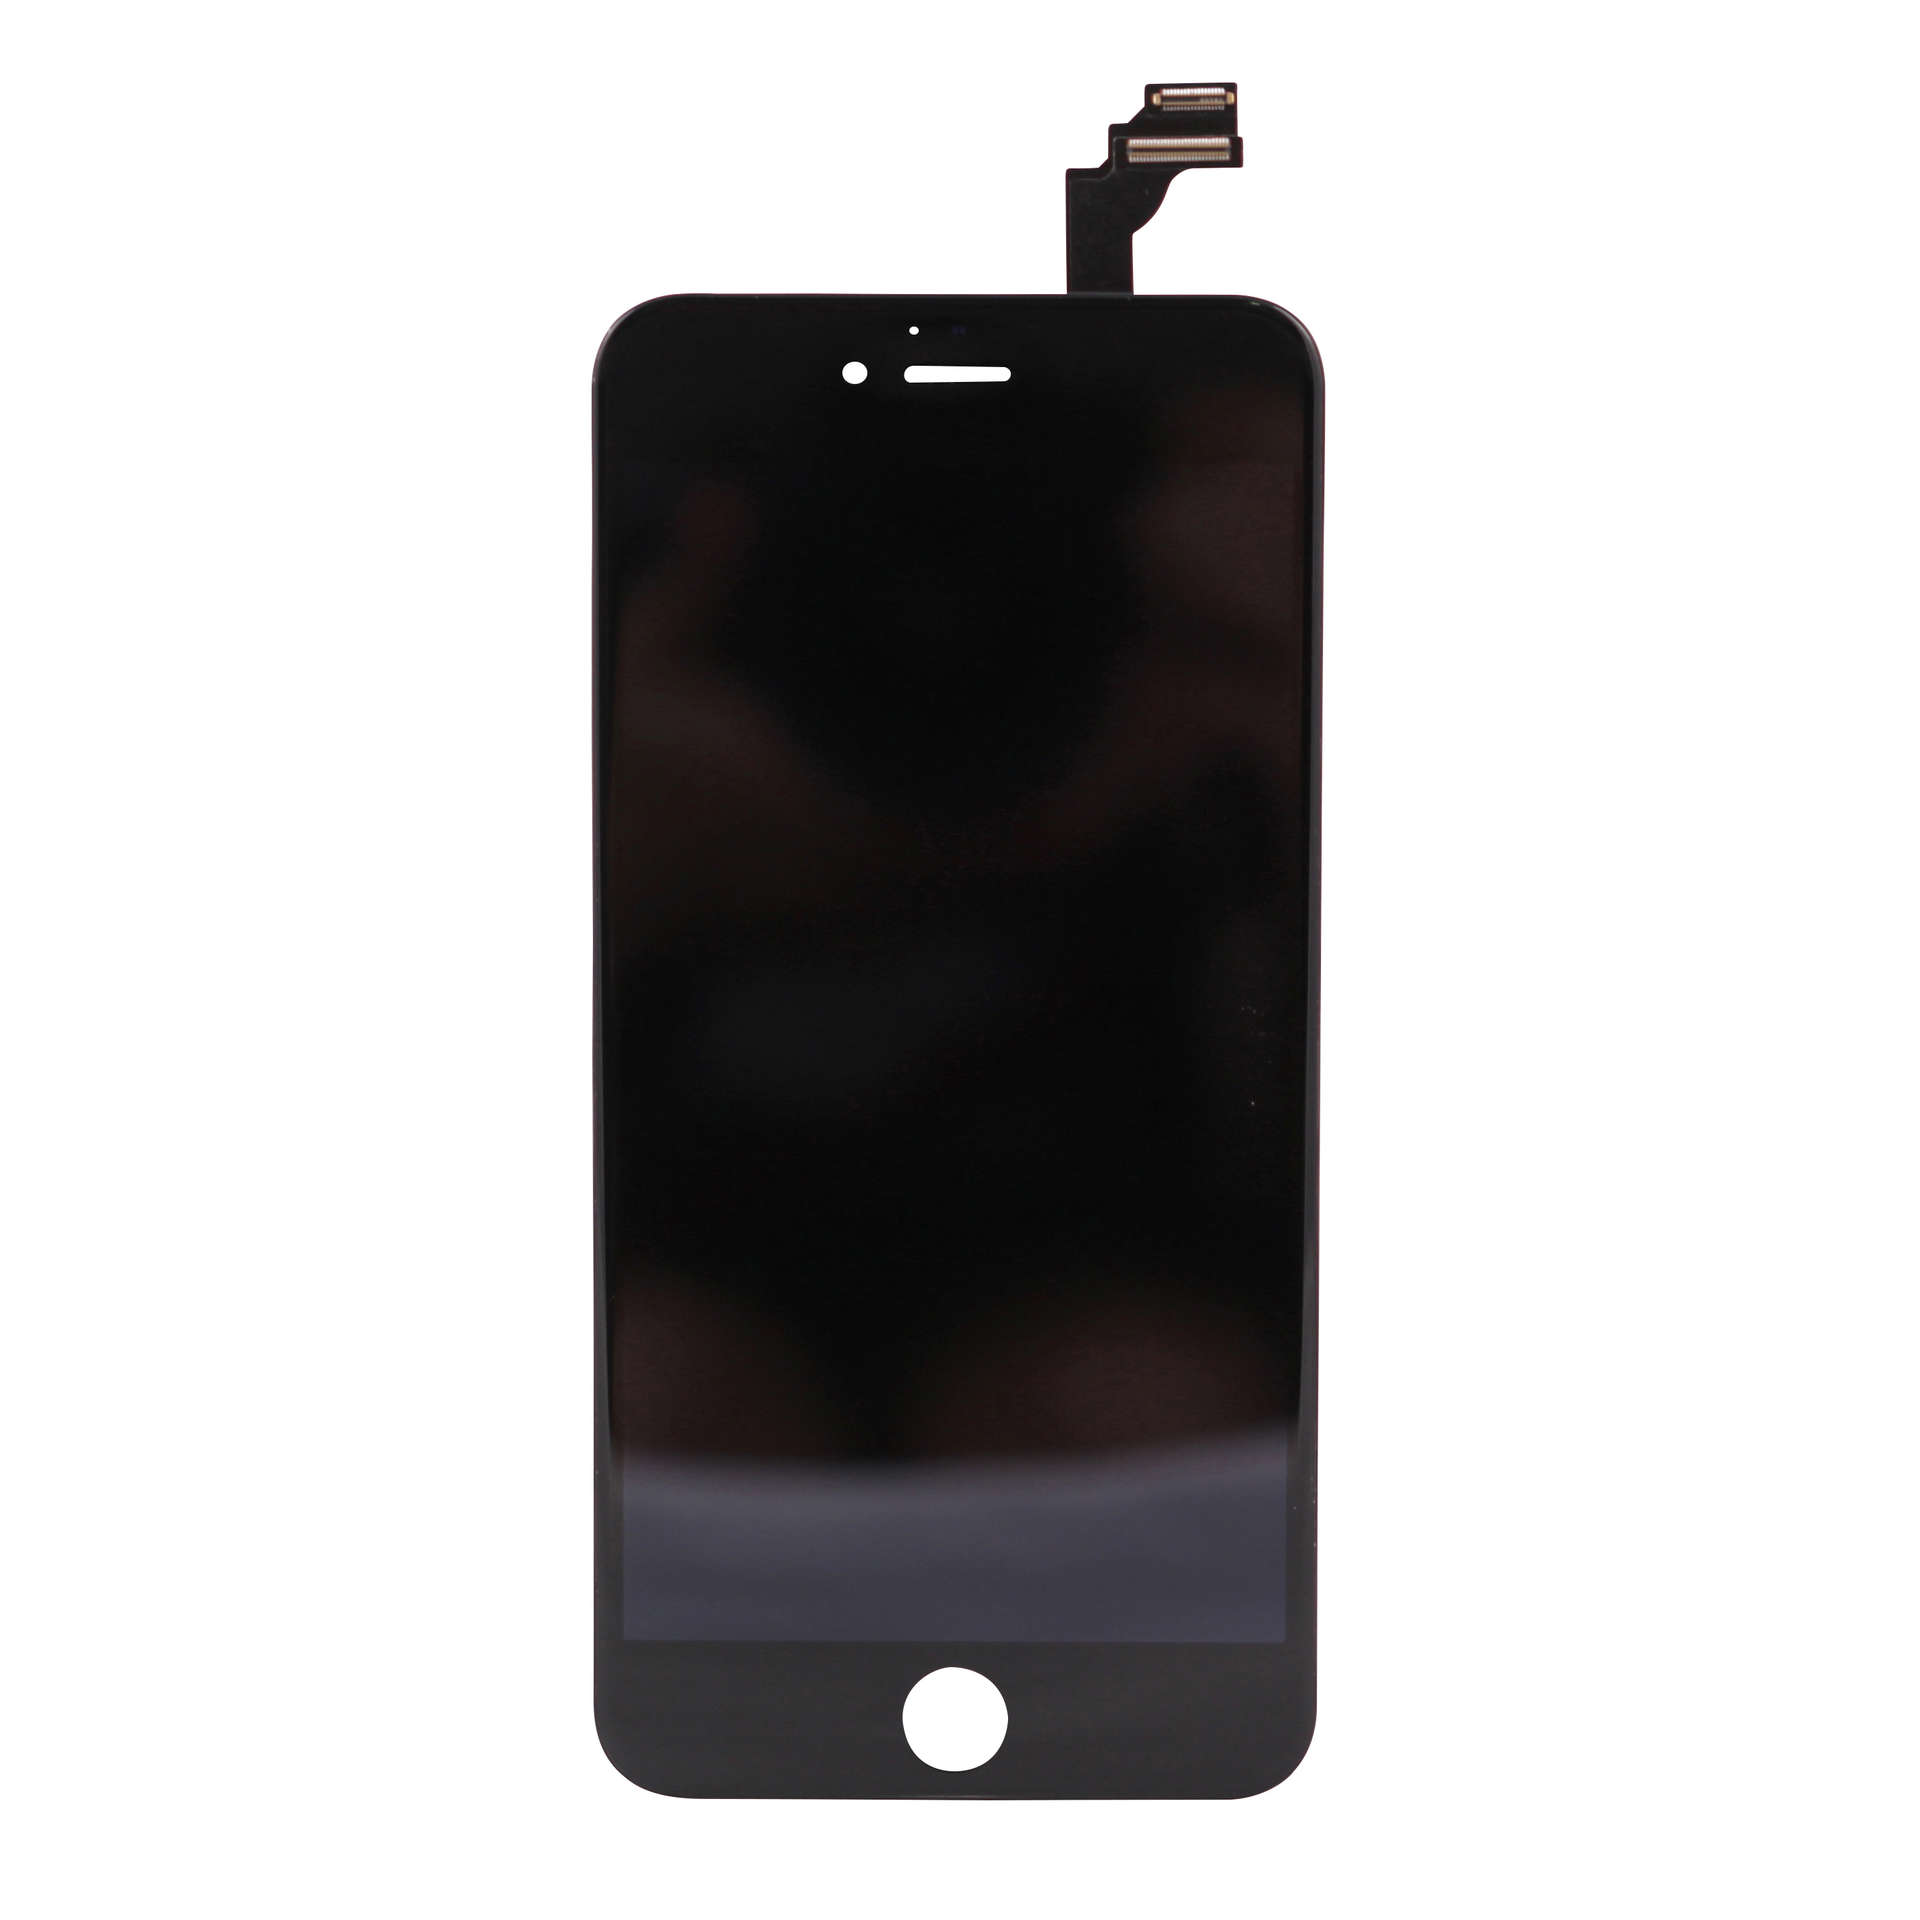 Apple Iphone Screen Replacement Price